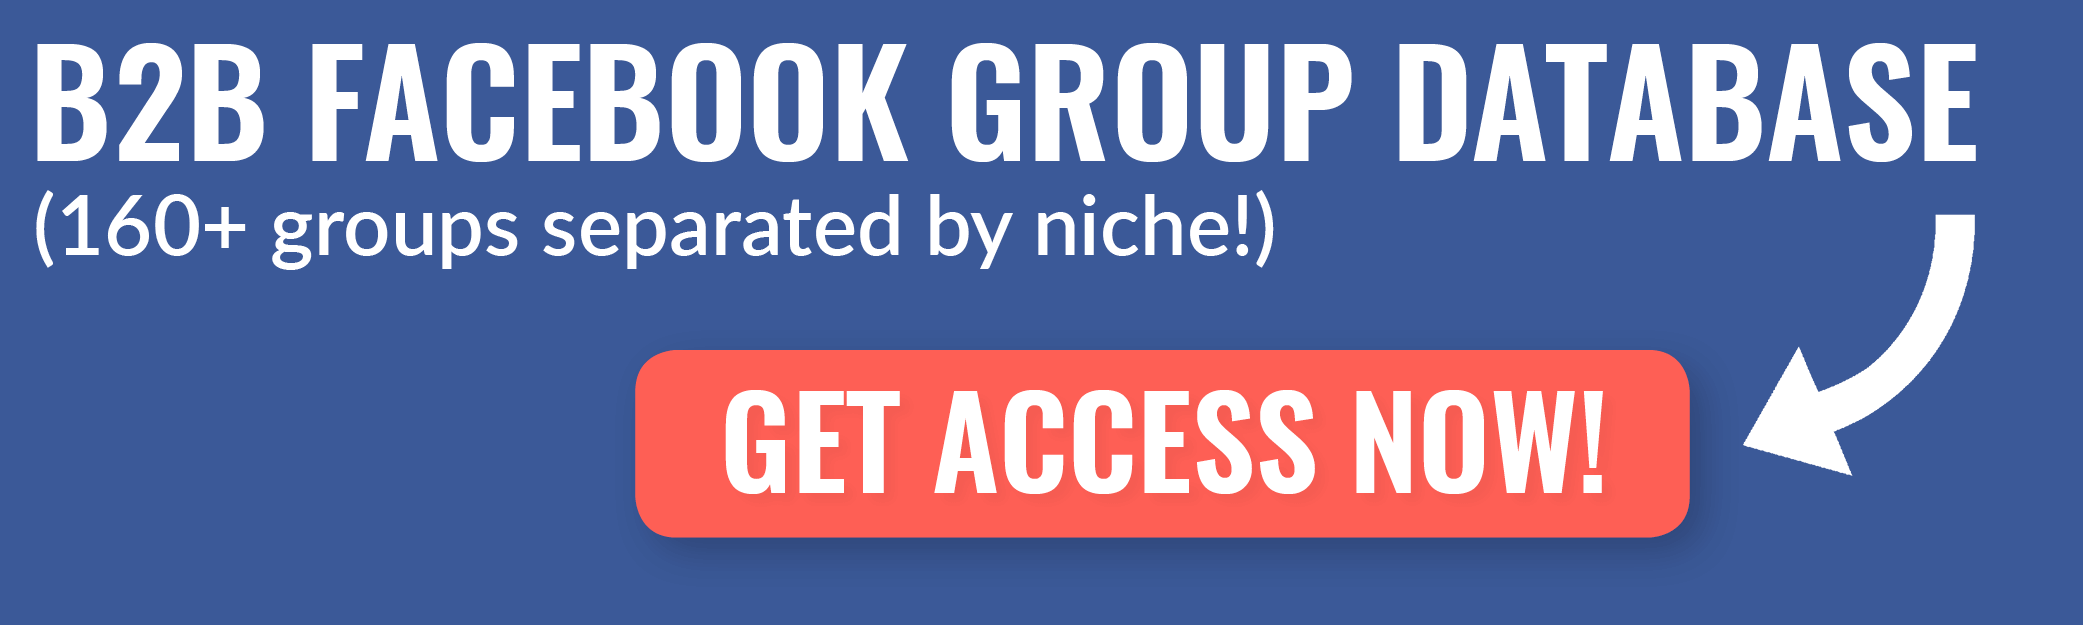 b2b-fb-group-database